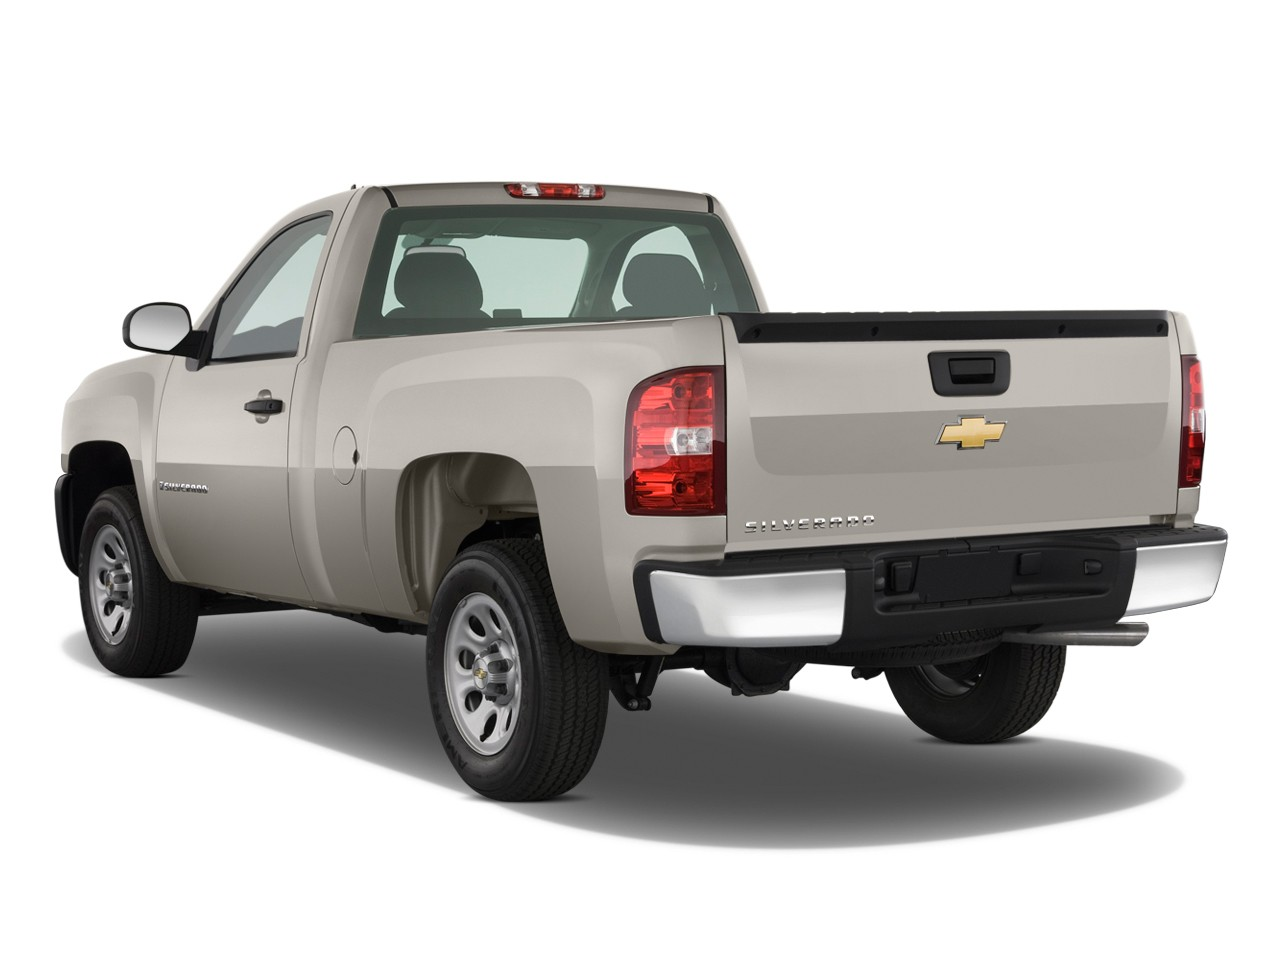 chevrolet silverado 1500 regular cab specs photos 2008 2009 2010 2011 2012 autoevolution. Black Bedroom Furniture Sets. Home Design Ideas